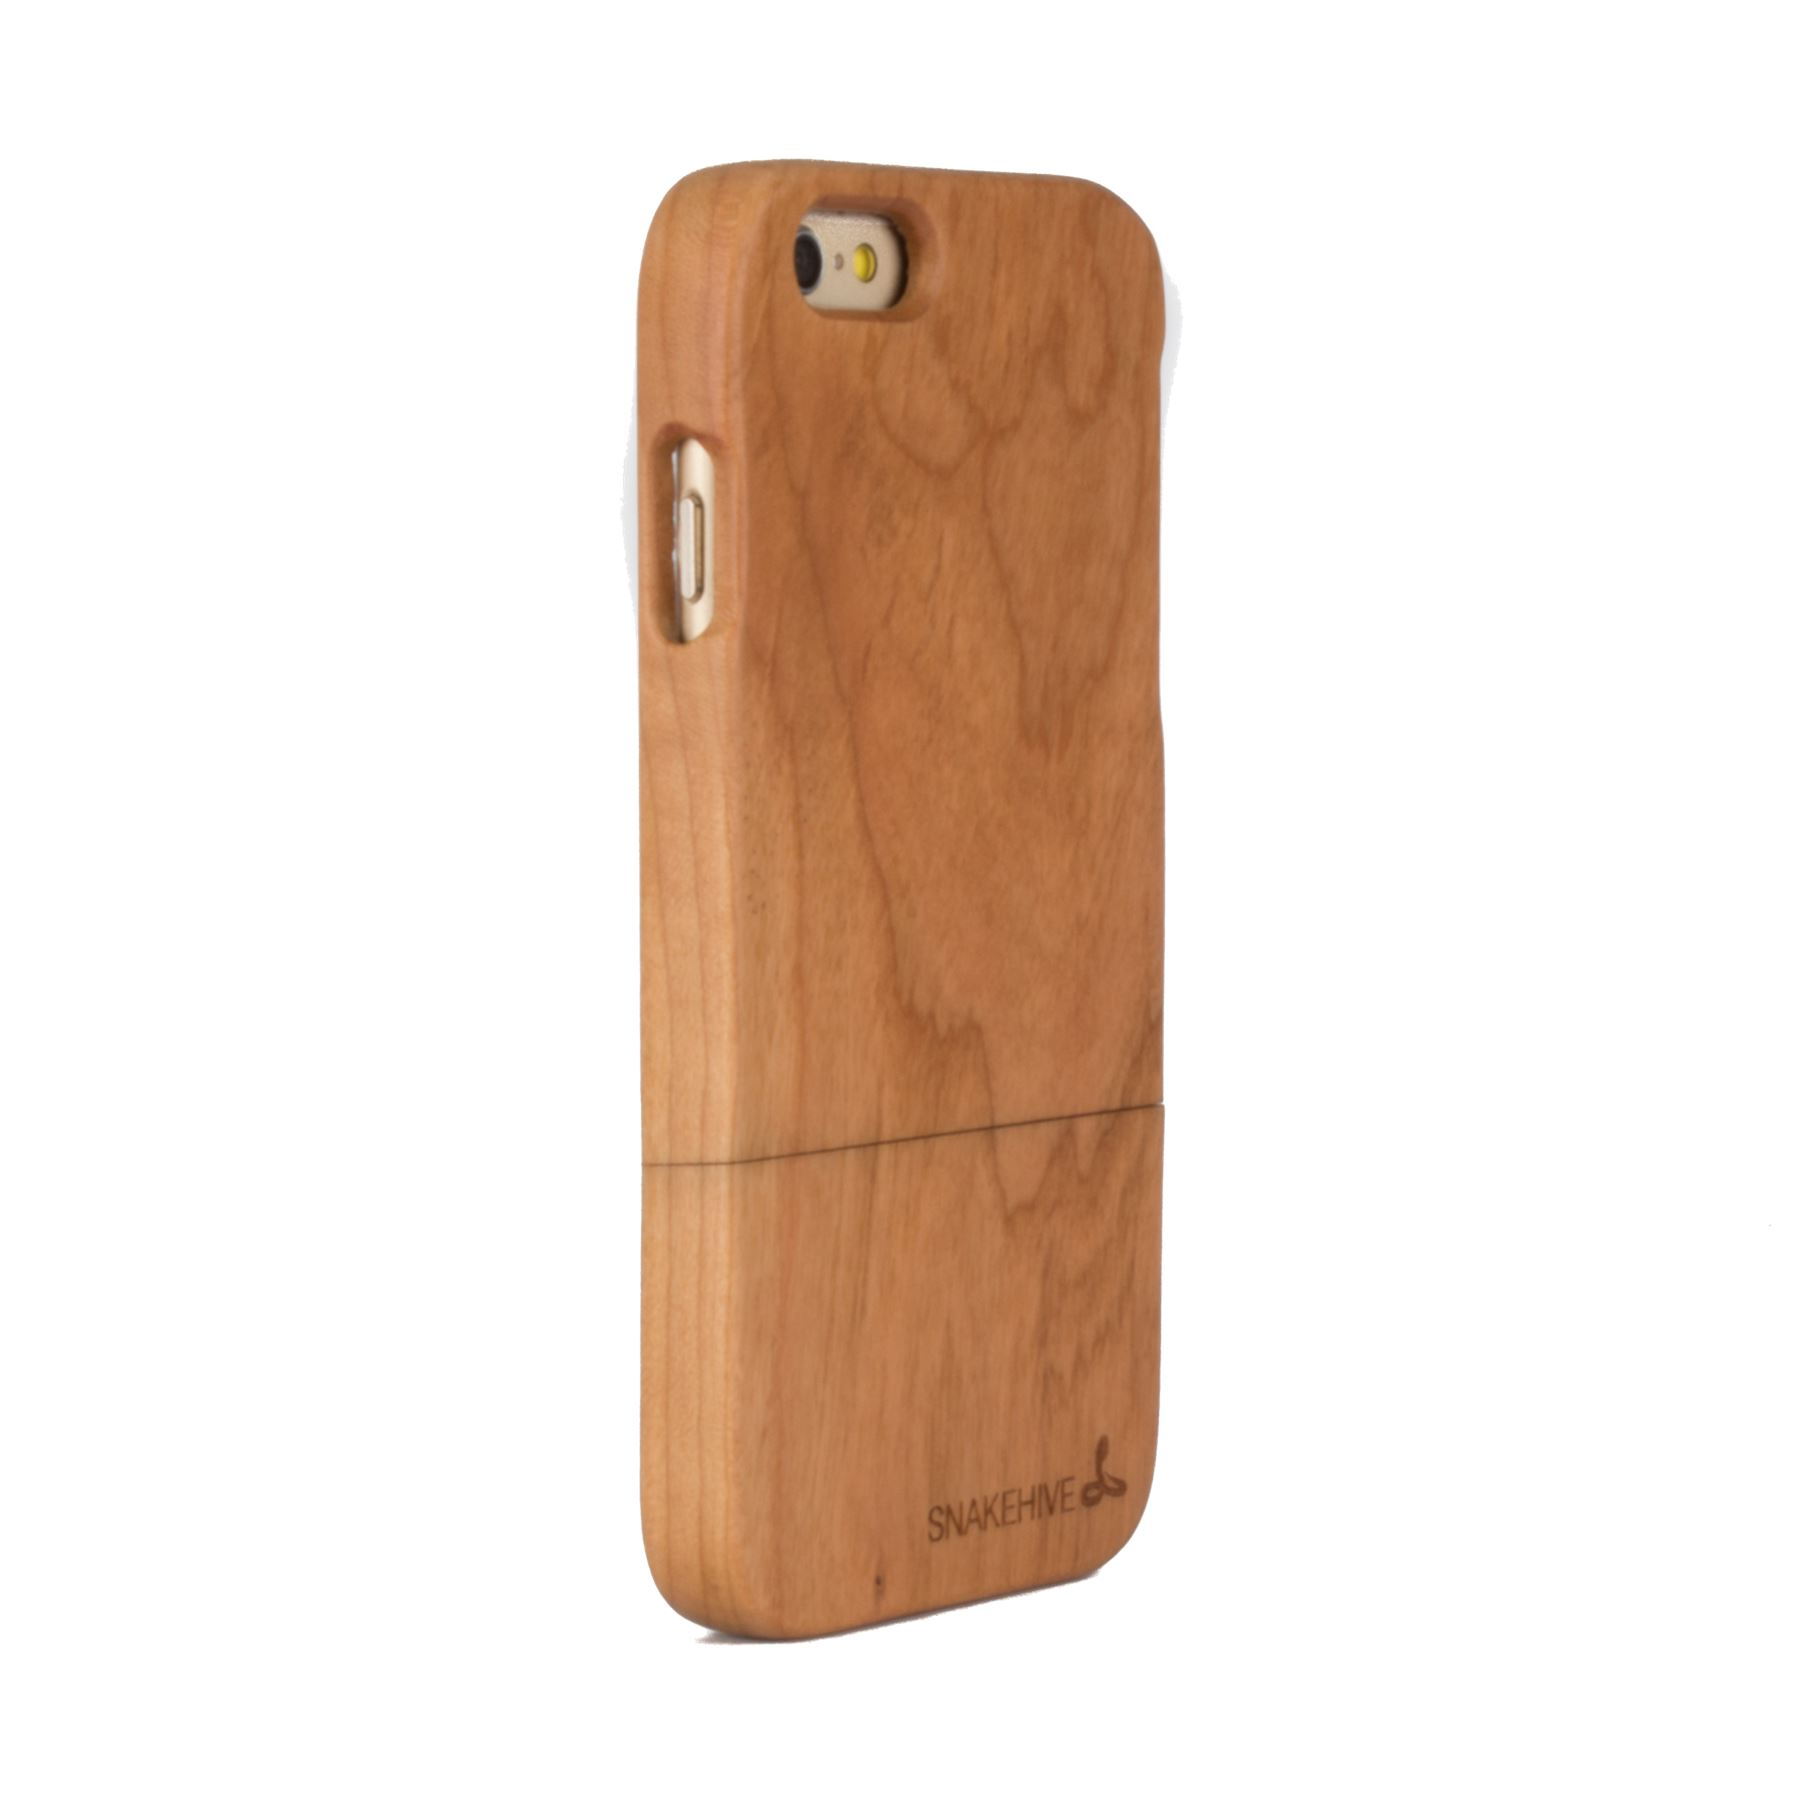 snakehive real solid wooden case cover for apple iphone 6 6s natural wood ebay. Black Bedroom Furniture Sets. Home Design Ideas